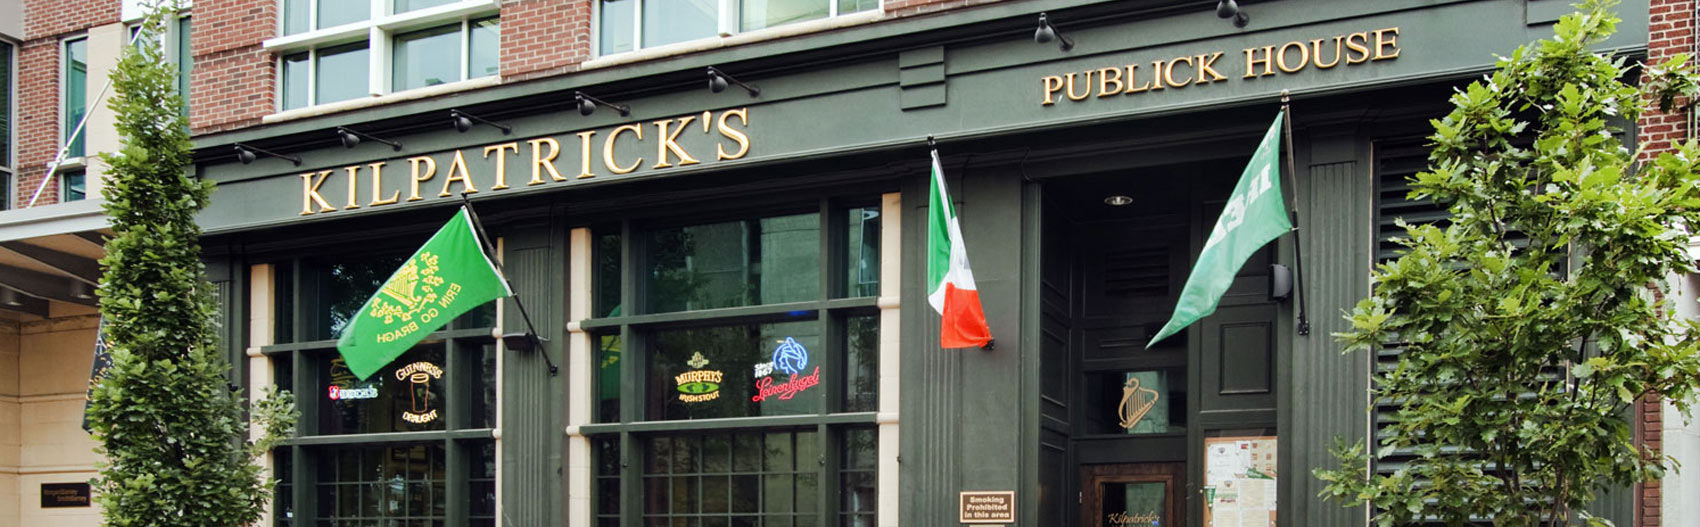 Kilpatrick's Publick House - Downtown Ithaca, NY